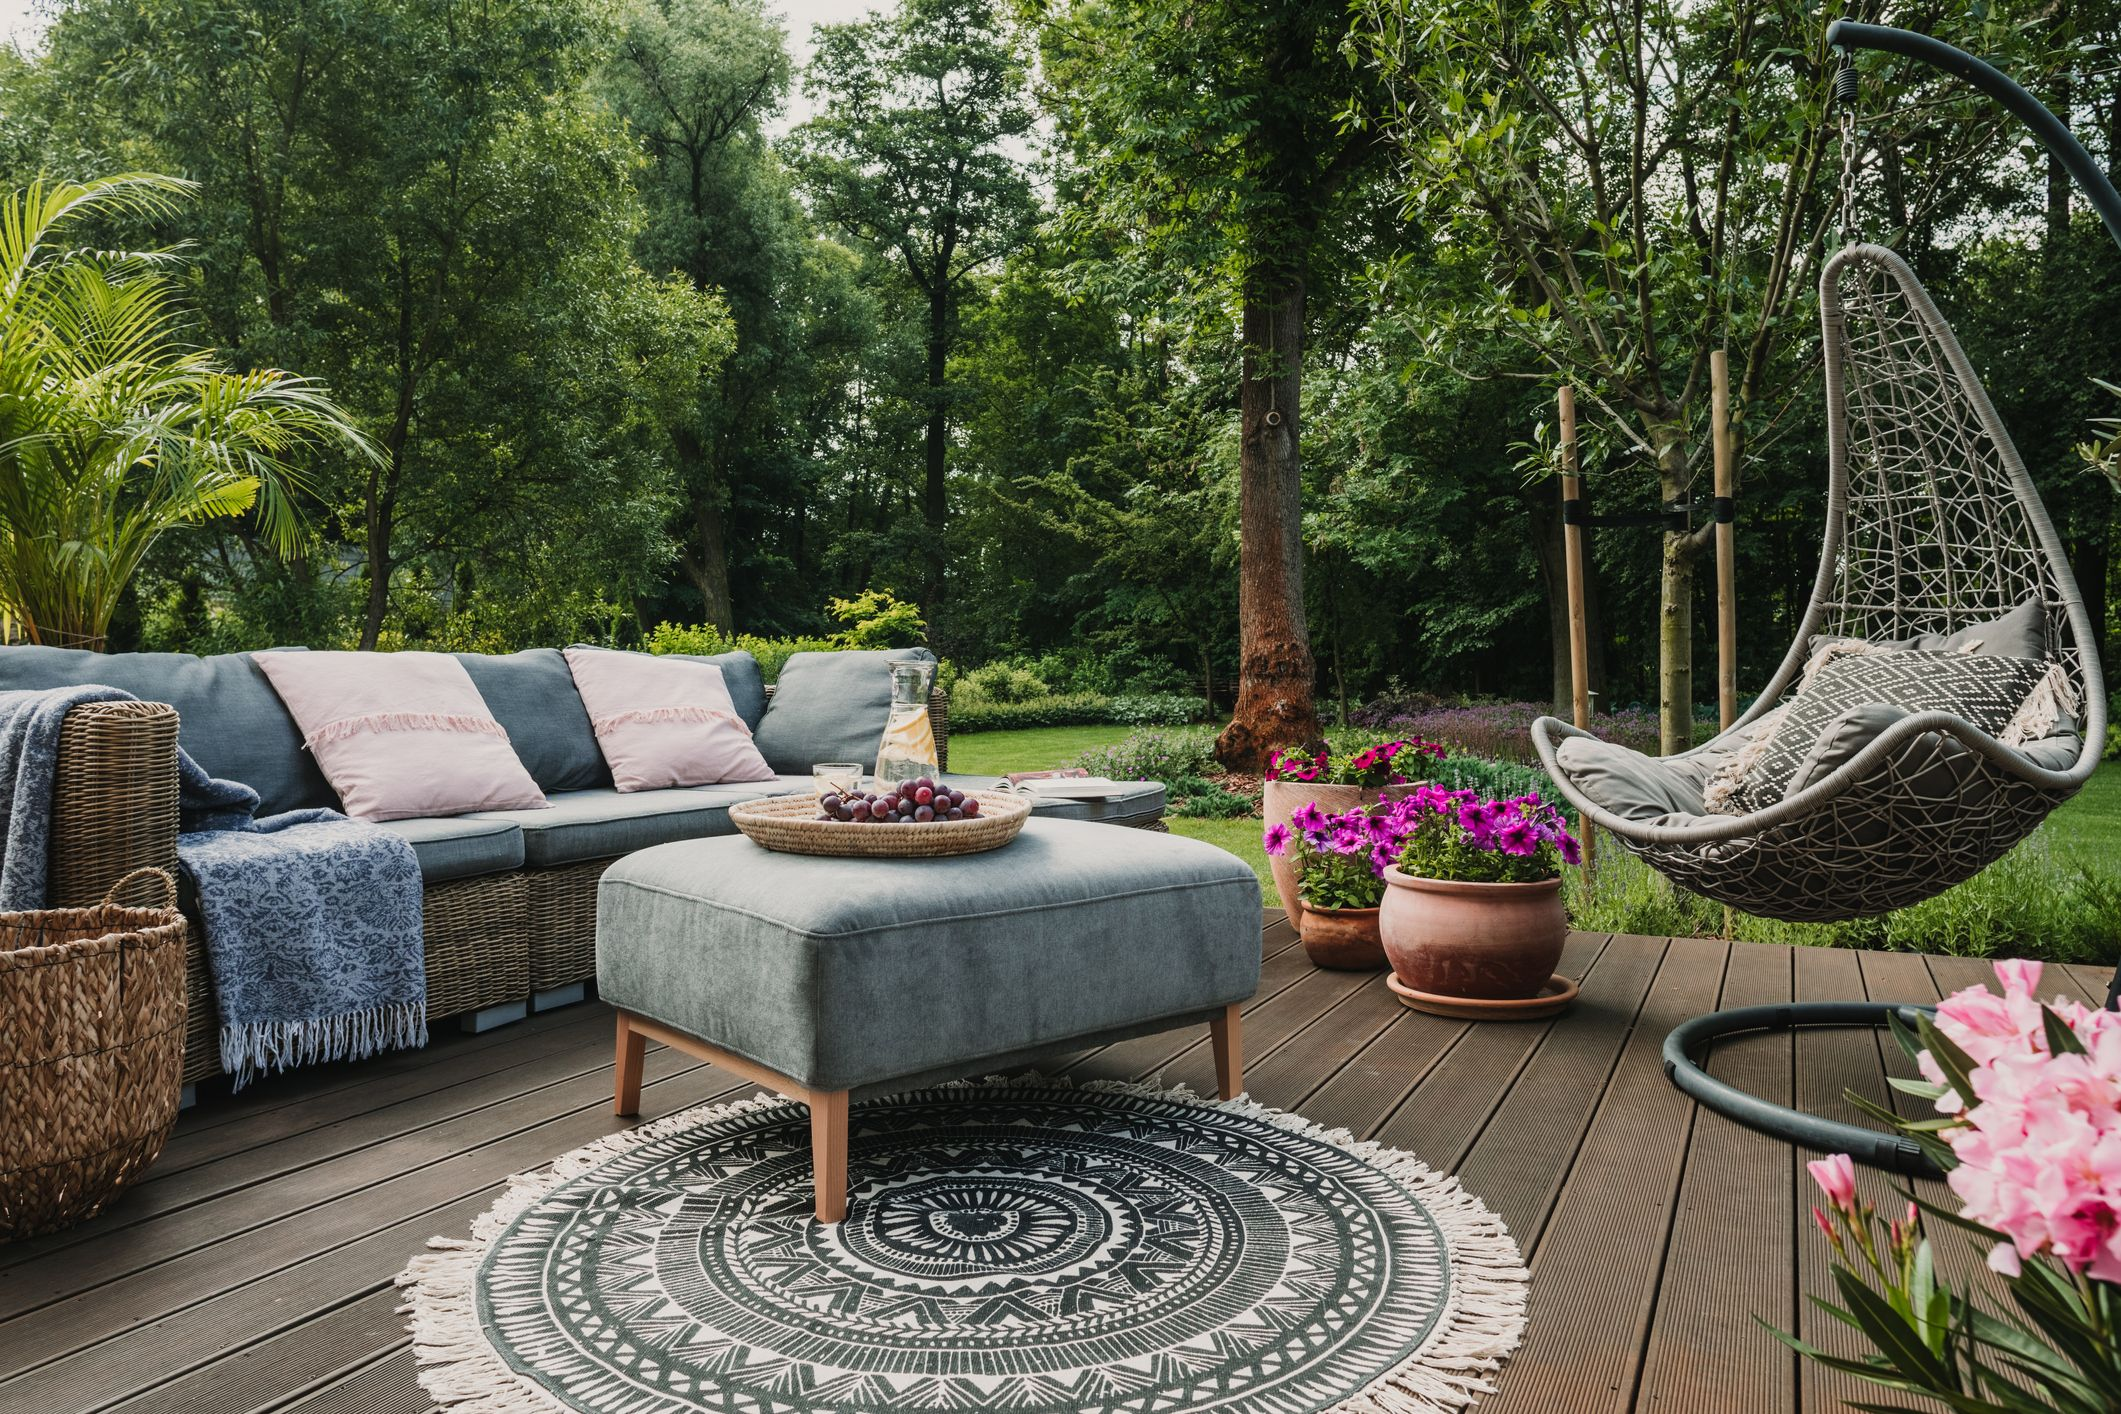 20 Amazon Products You Can Buy to Completely Transform Your Outdoor Space